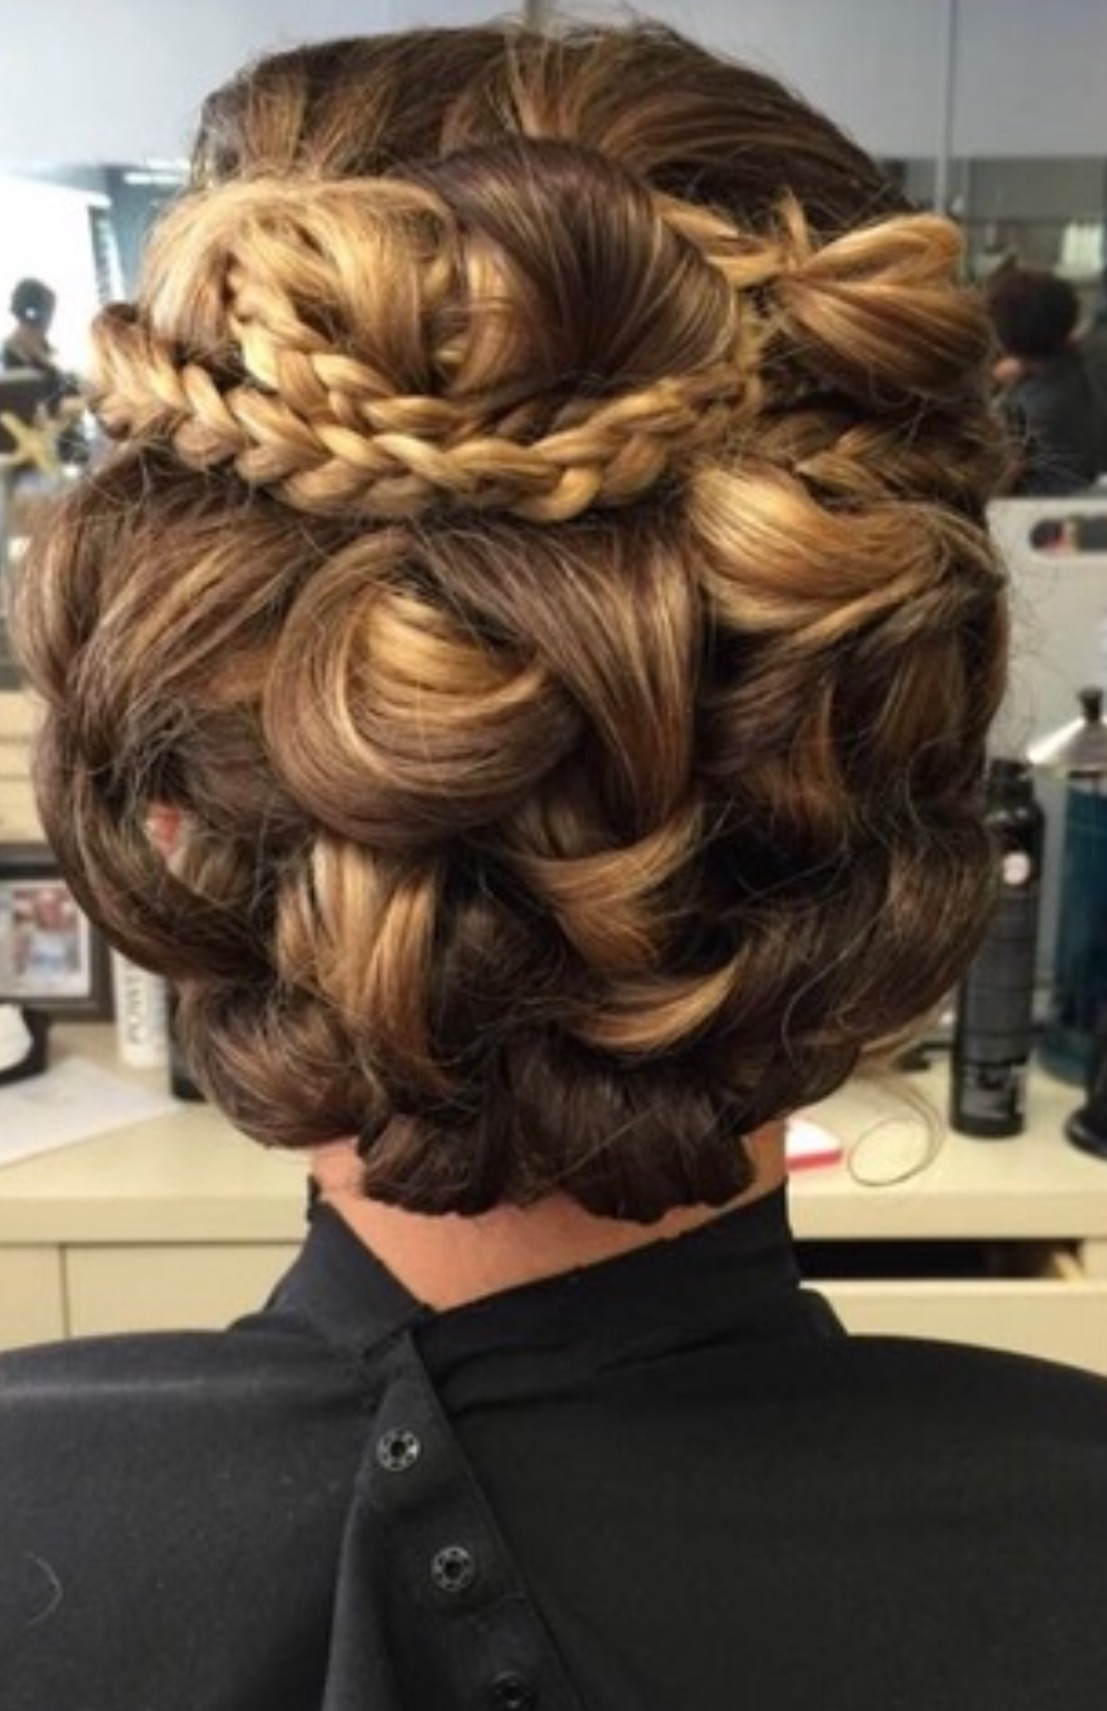 - 2. BRAIDED GODDESSLOOKING FOR A TWIST ON THAT PERFECT BRAIDED STYLE? THIS LOOK IS FUN, FLIRTY AND DRAMATIC....HAIR STYLIST: MAGEN SHORT AT SMOAK SALON